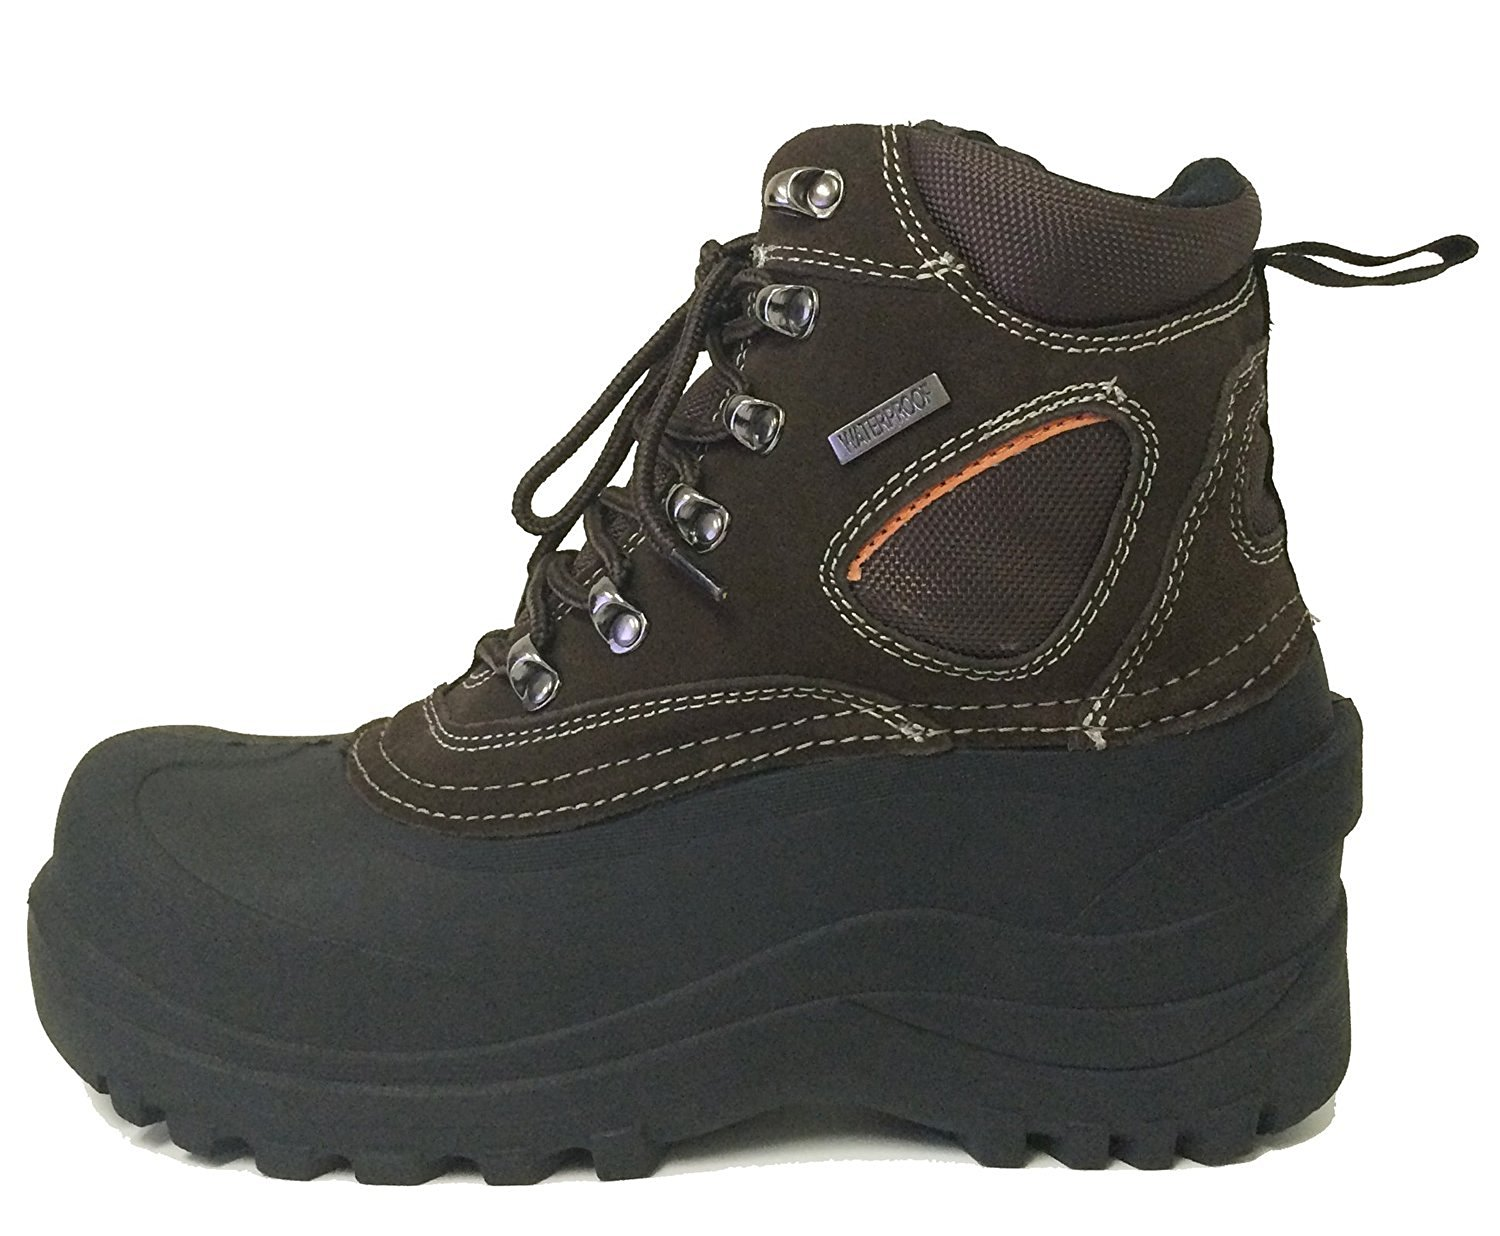 f48450447 Get Quotations · VC607S Men's Winter Boots Snow Leather Cold Weather Thermolite  Waterproof Hiking Insulated Work Shoes Brown